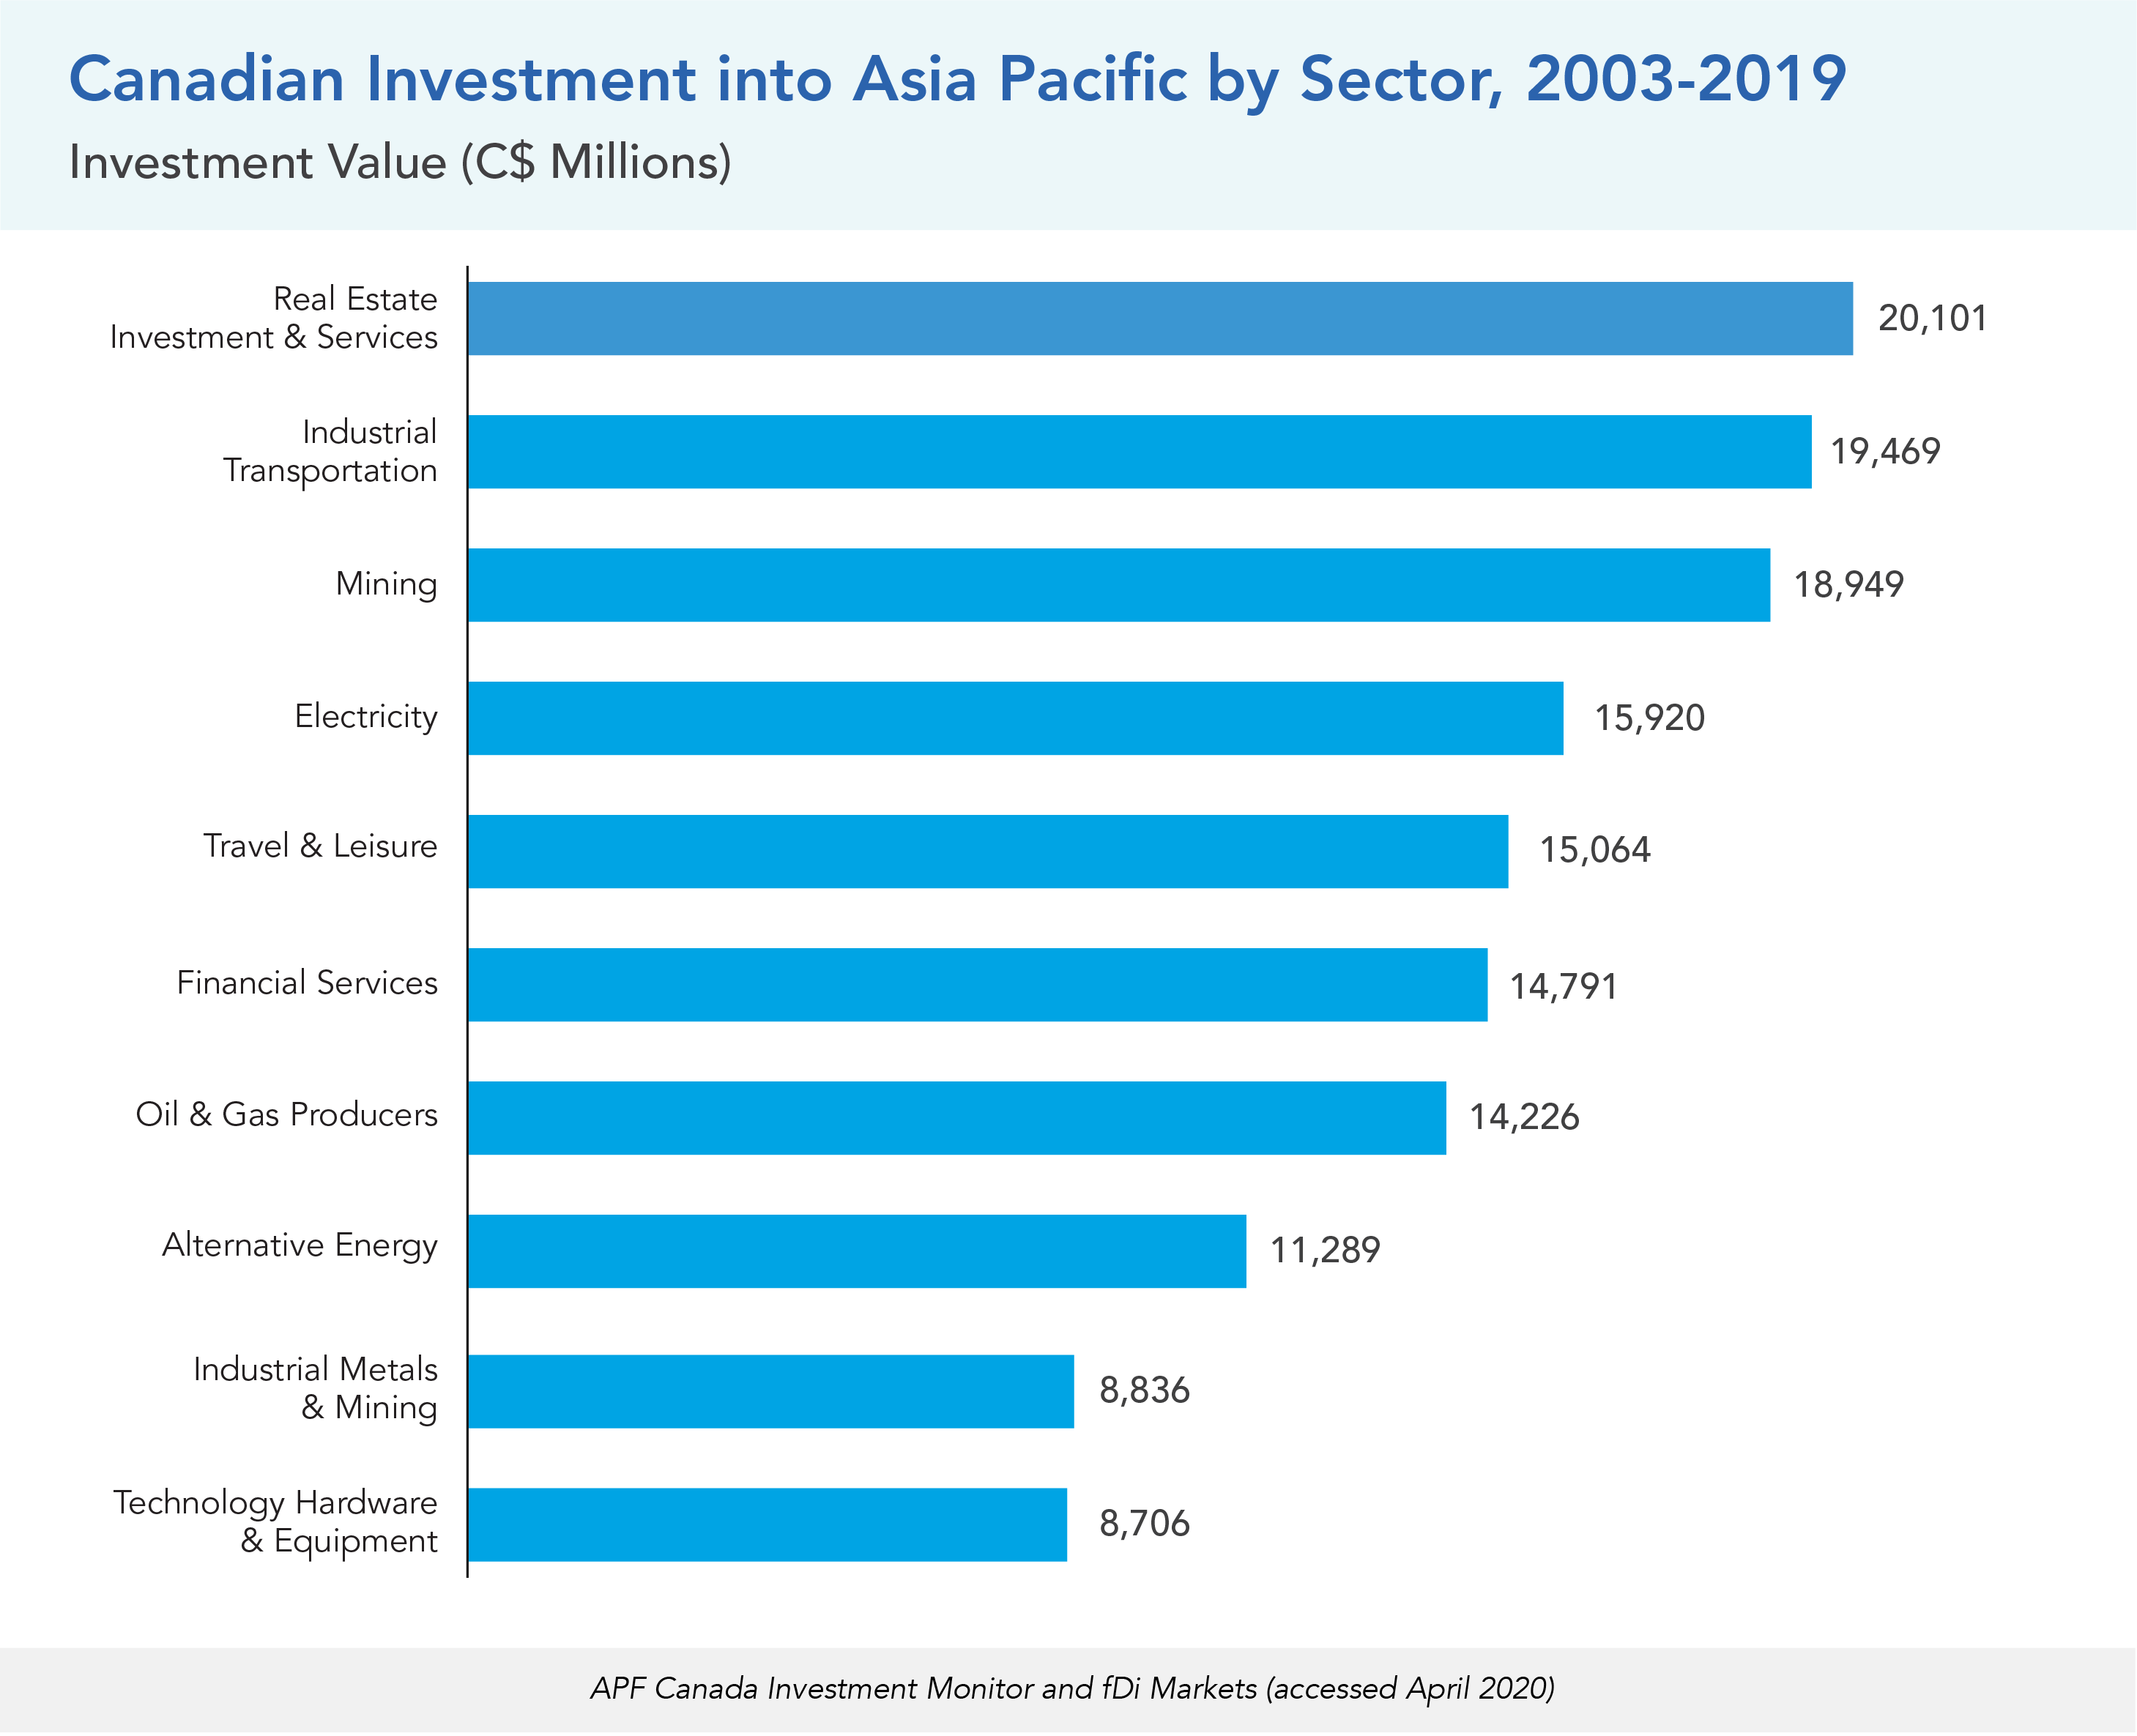 Canadian Investment into Asia Pacific by Sector, 2003-2019